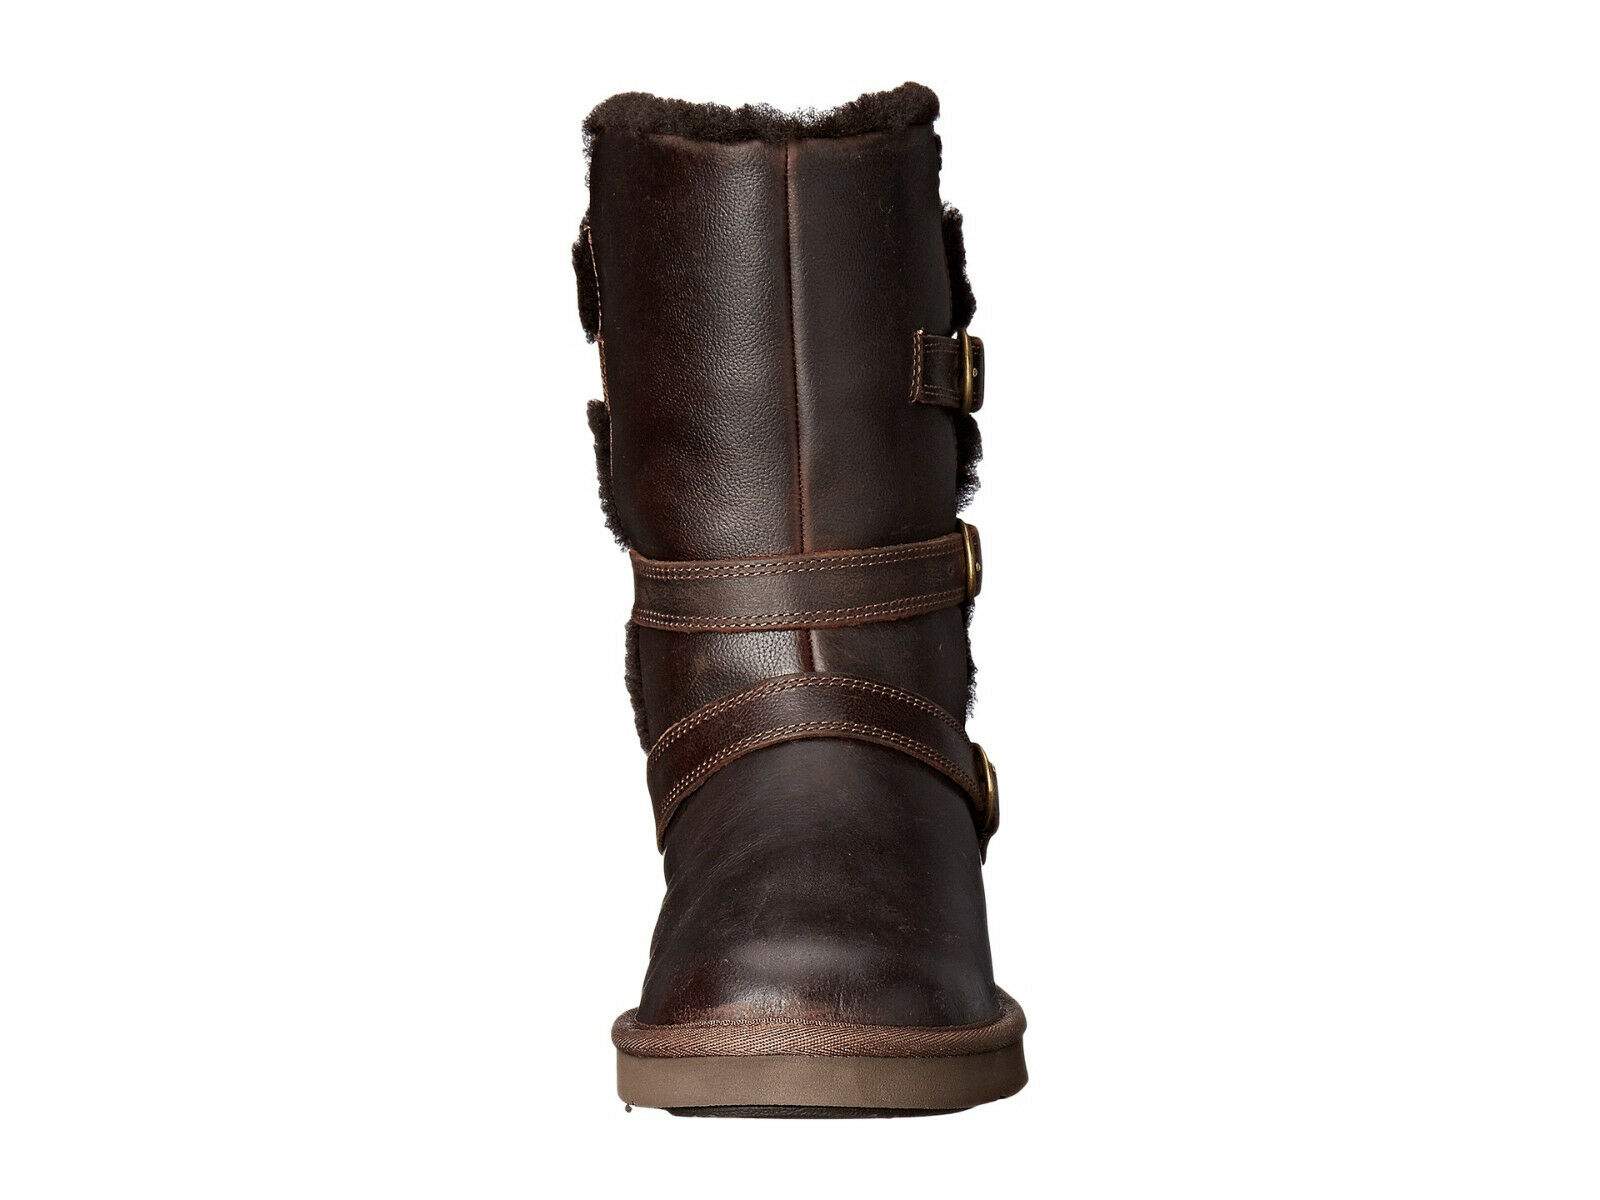 NEW WOMEN UGG AUSTRALIA BOOT BECKET CHOCOLATE 1008827 WATER RESISTANT LEATHER